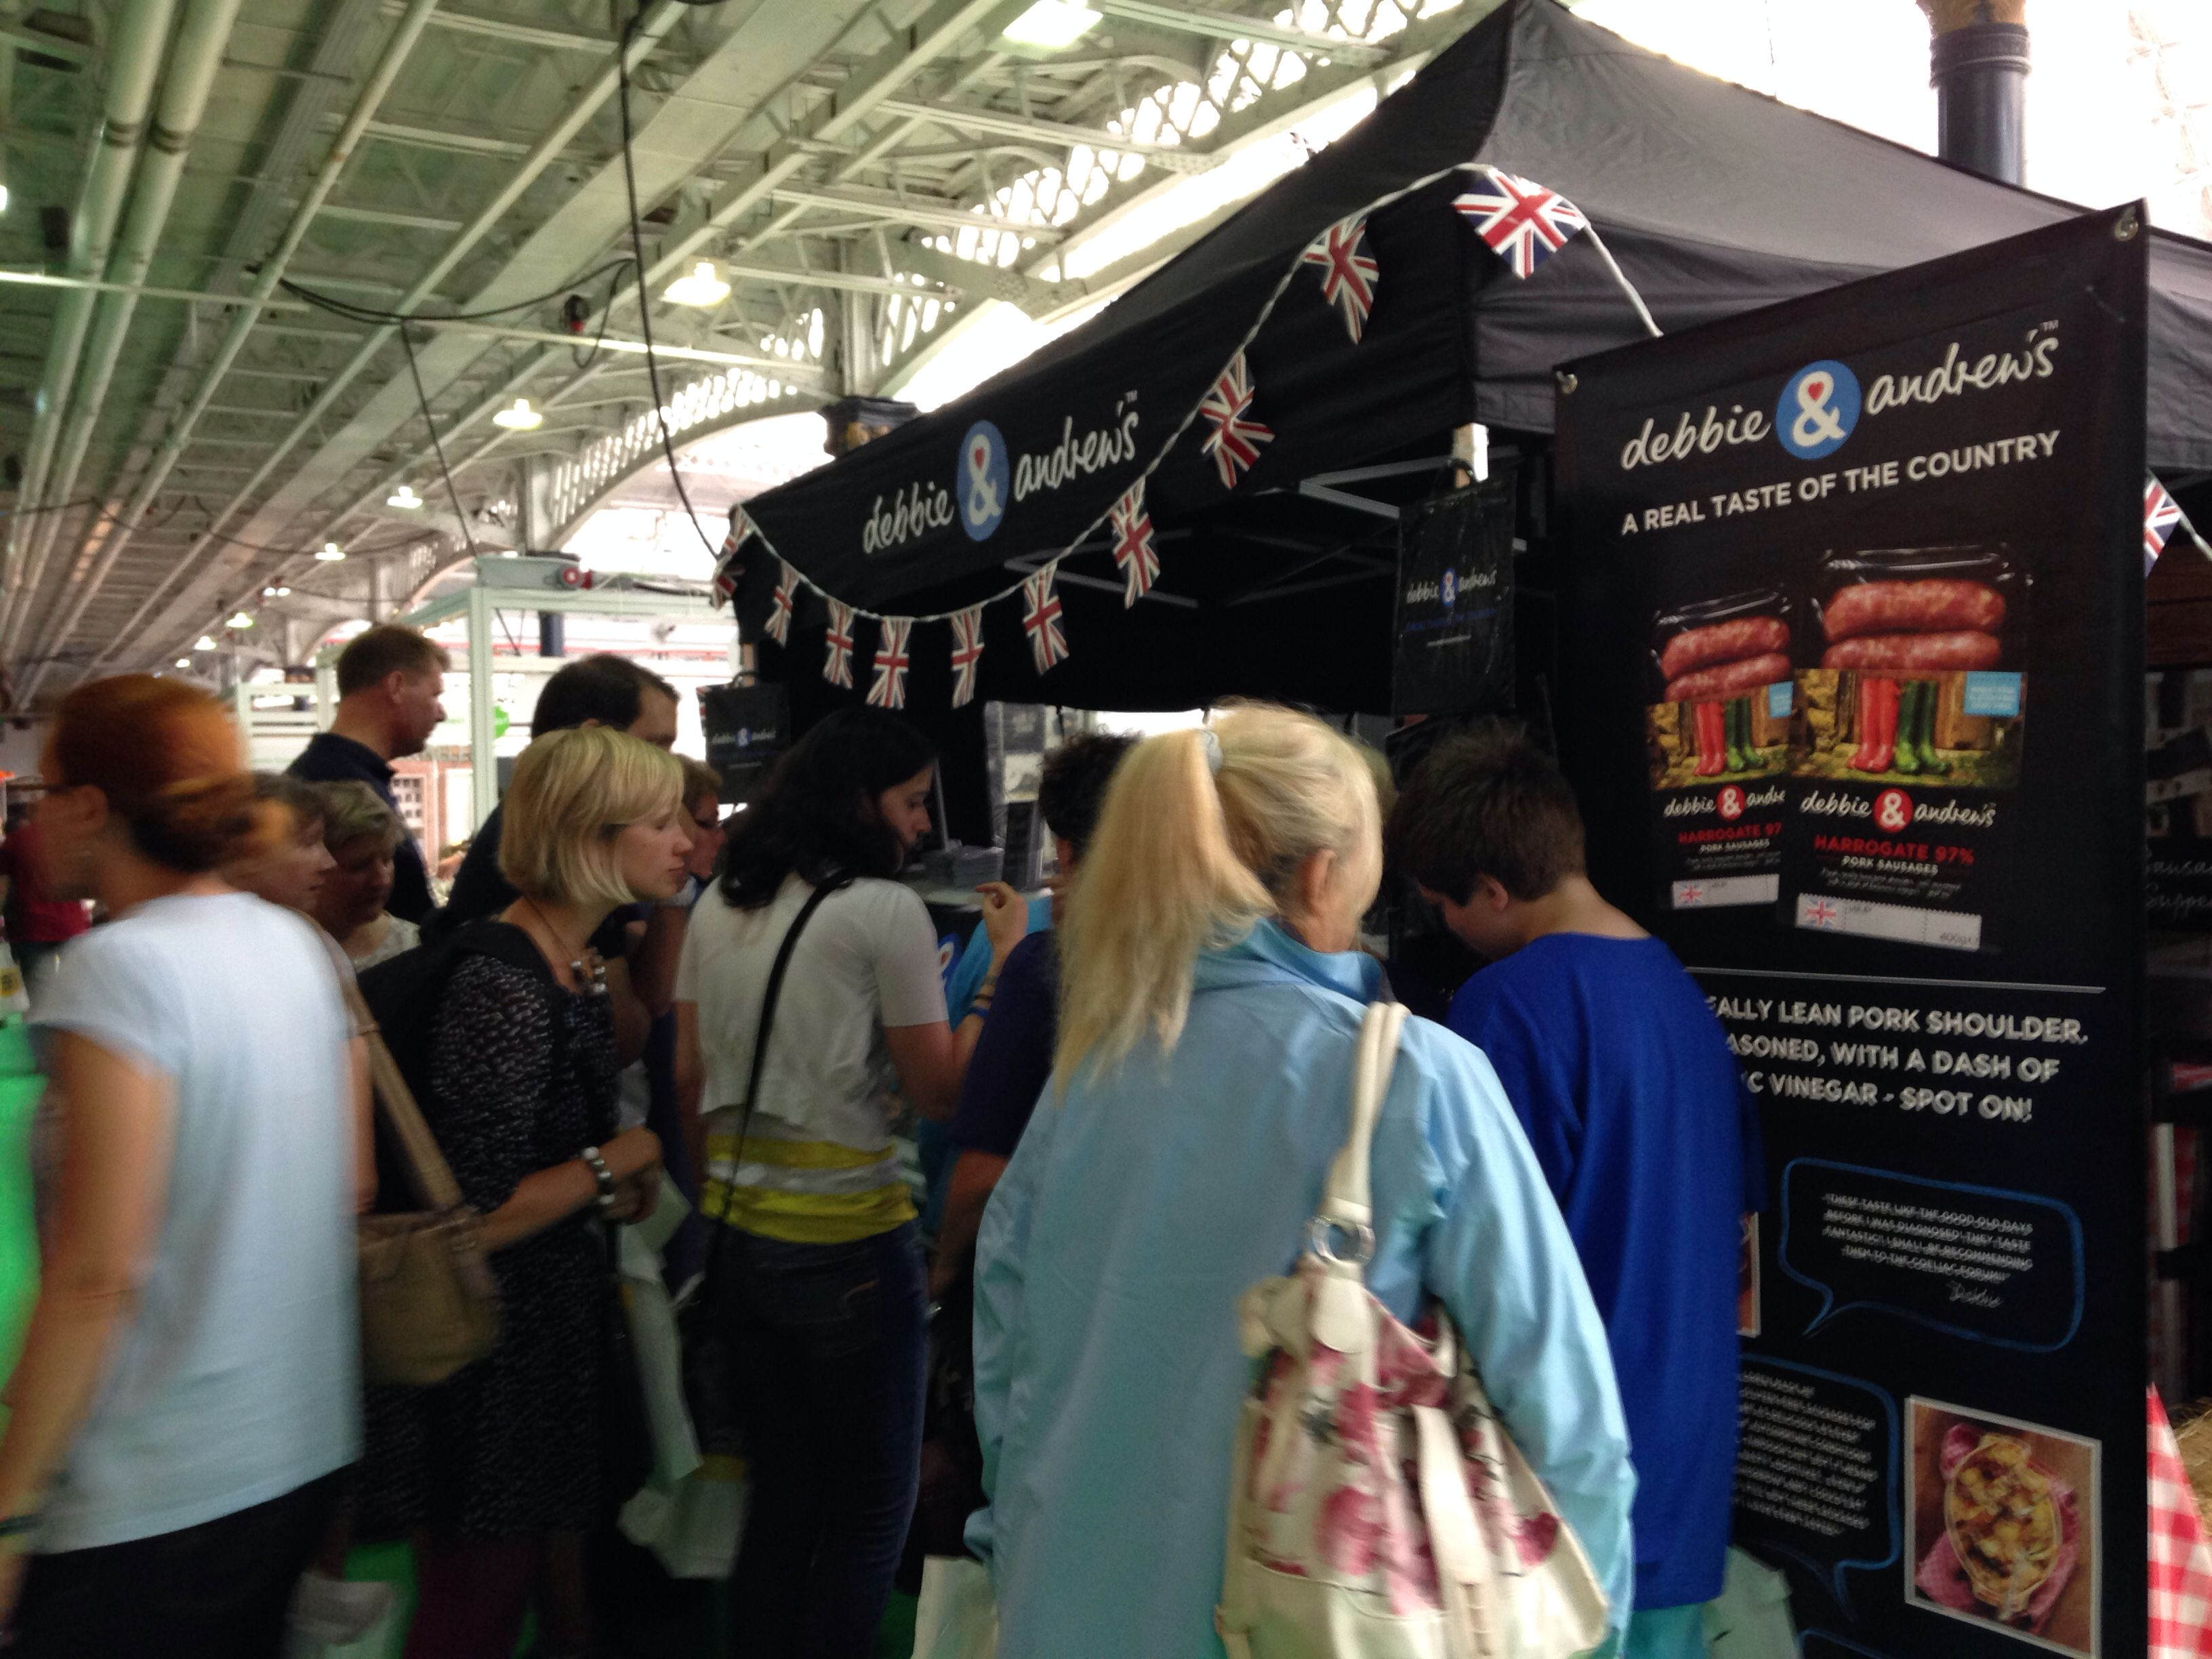 The smell of our Harrogate 97% Pork sausages pulled in the crowds!